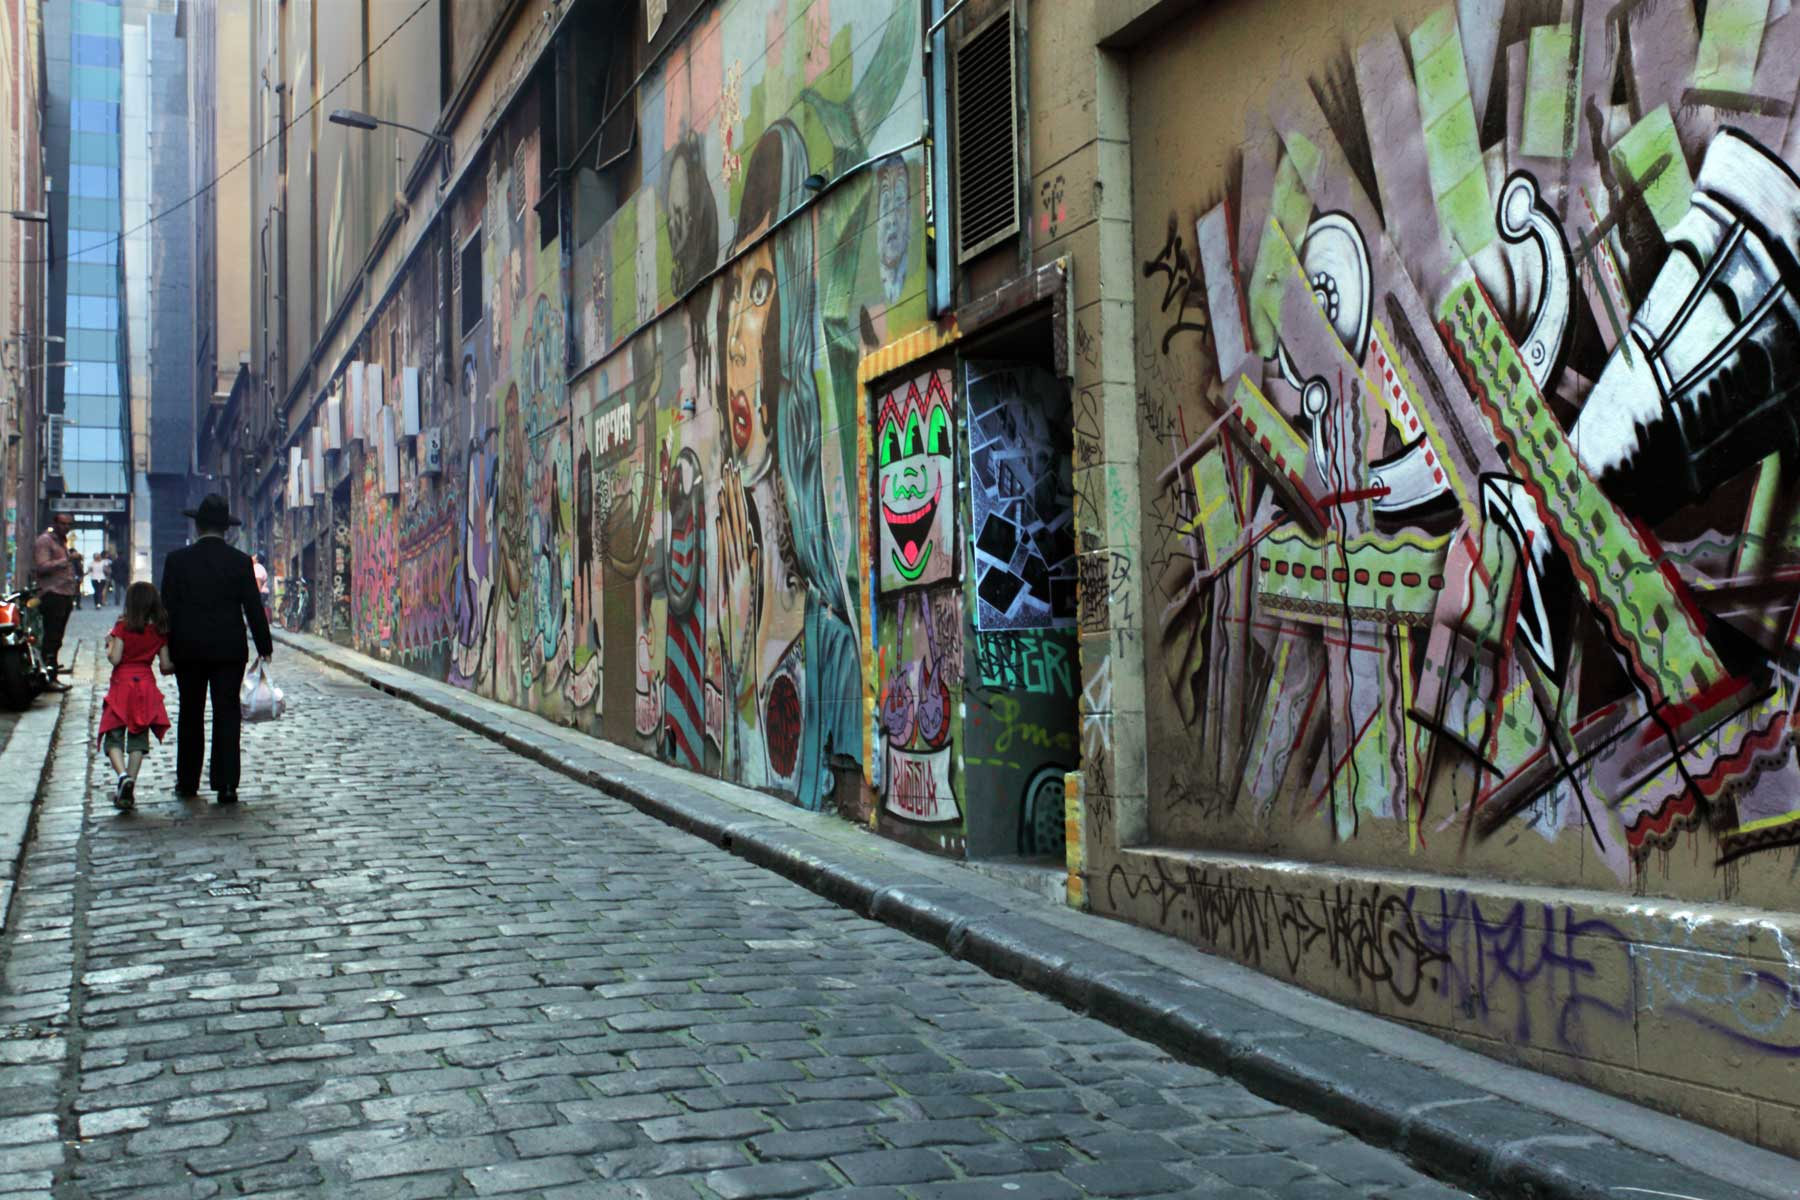 A man and young girl walk down a cobblestoned lane with graffiti on the walls, Melbourne